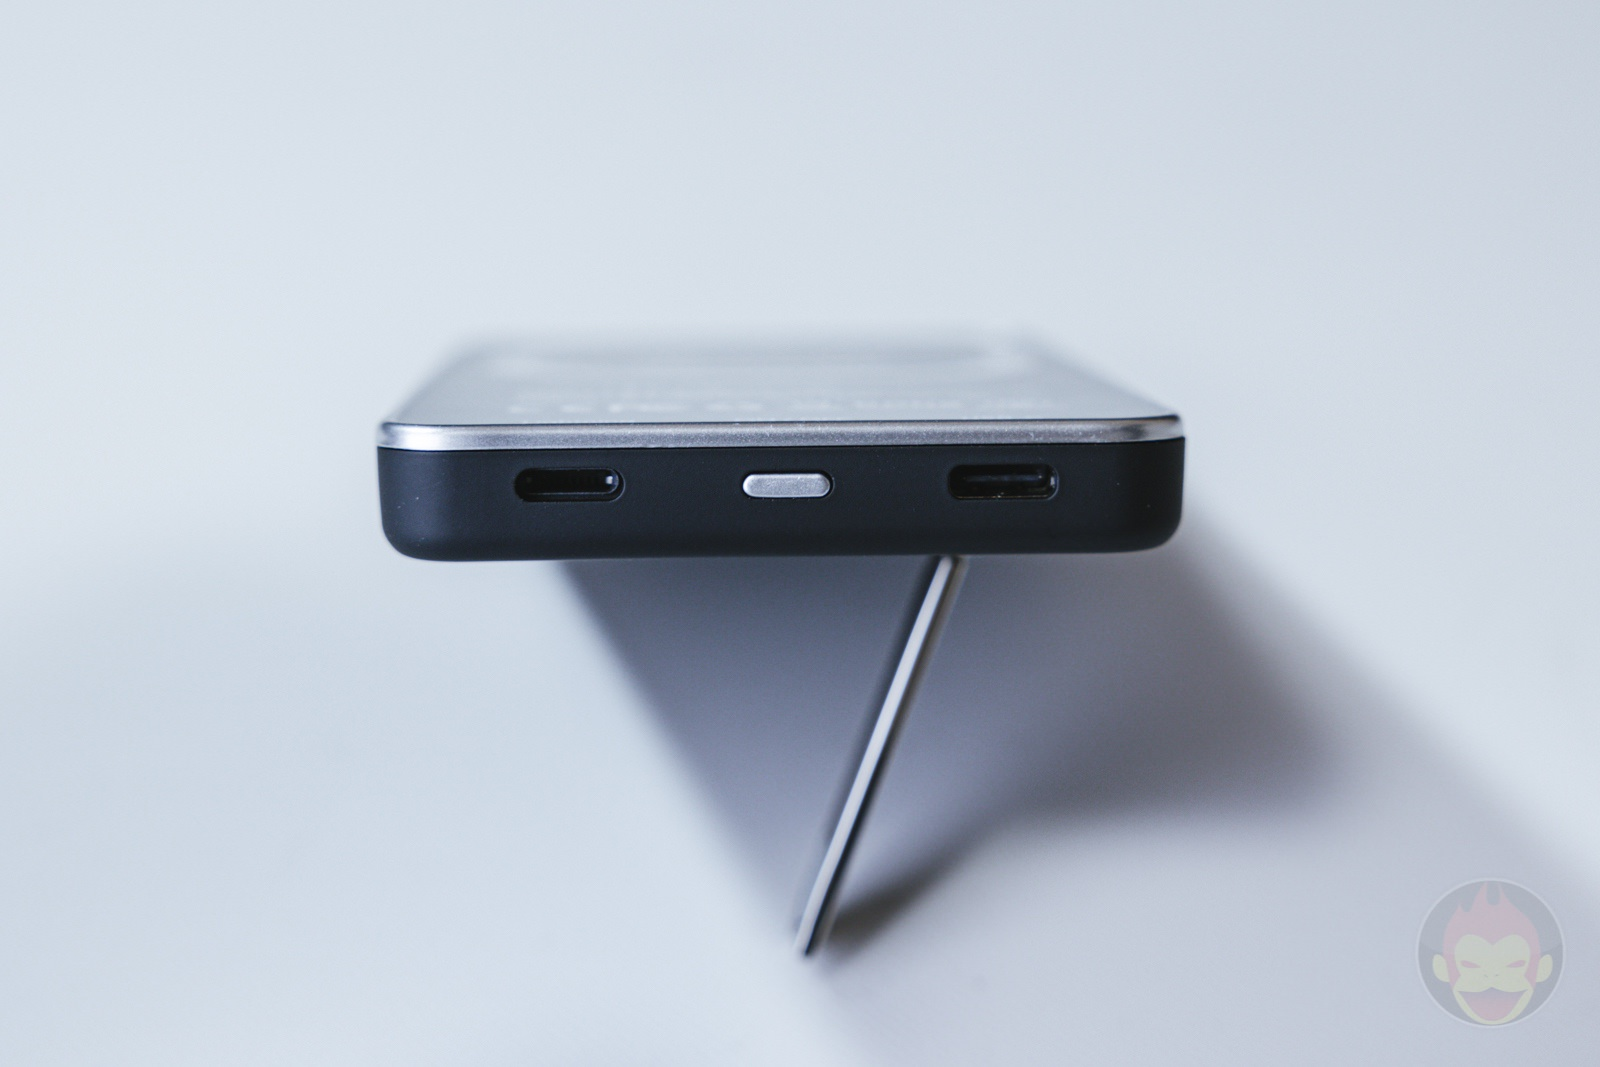 CIO-MB5000-MAG-MagSafe-Supported-Mobile-Battery-Review-10.jpg